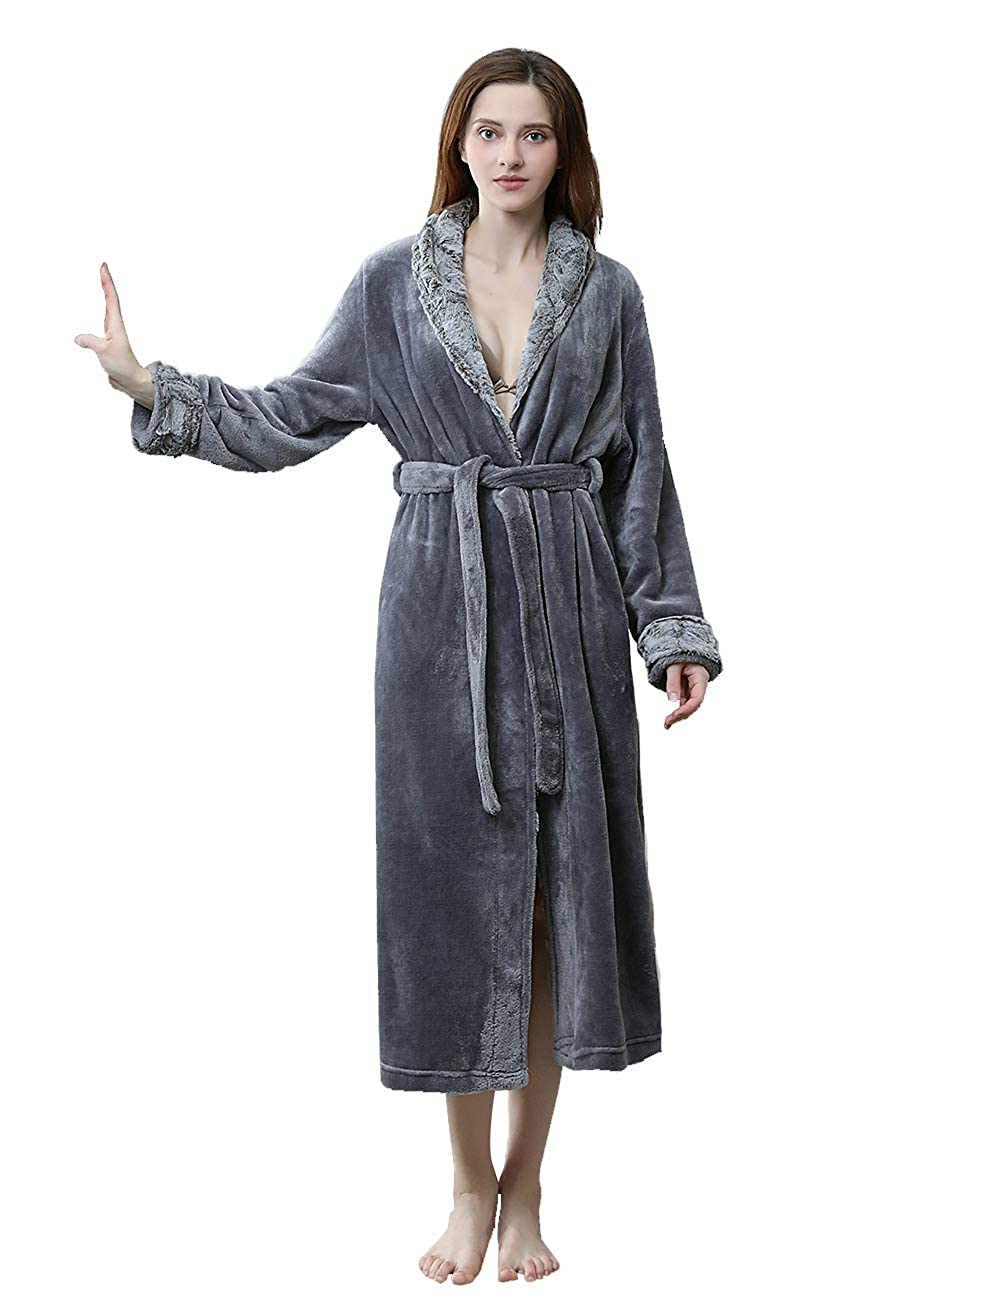 Dark Grey DGGLIFE Women's Warm Fleece Bathrobe Long Flannel Robe Shower Nightgown Sleepwear